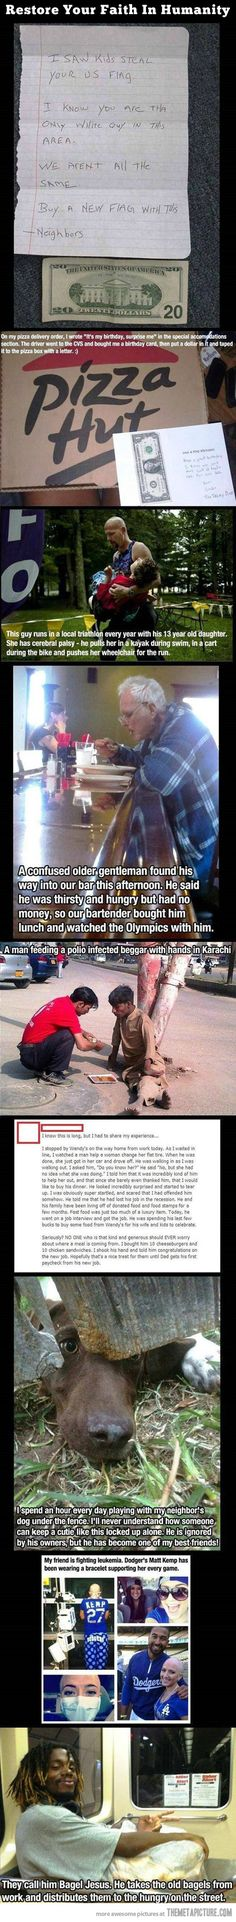 Humanity is not lost yet!